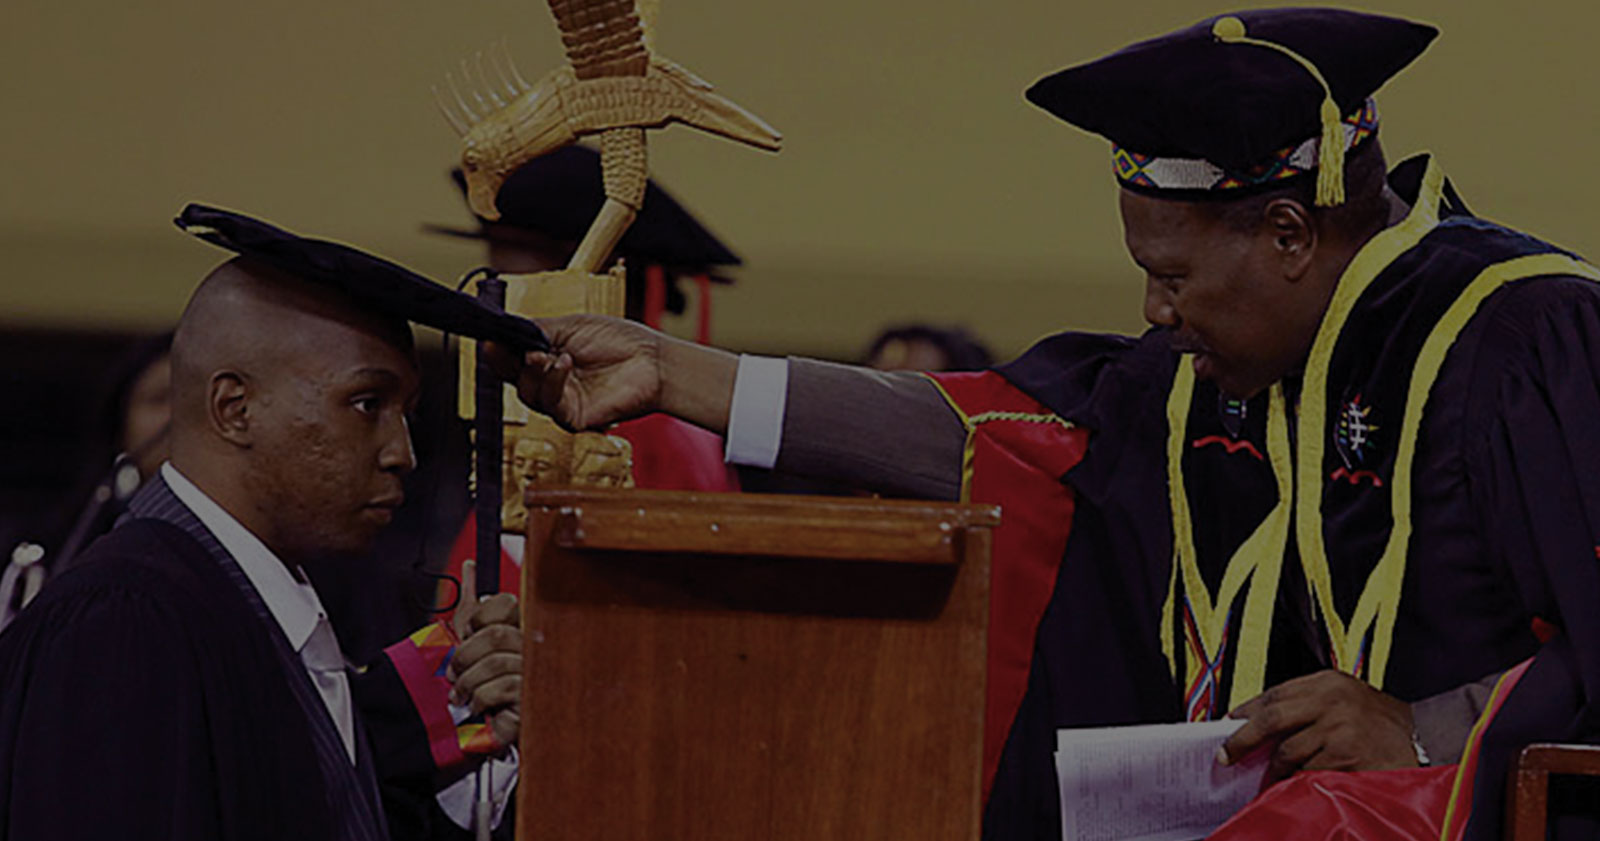 Blind student wearing academic gown and cap, graduating at university.